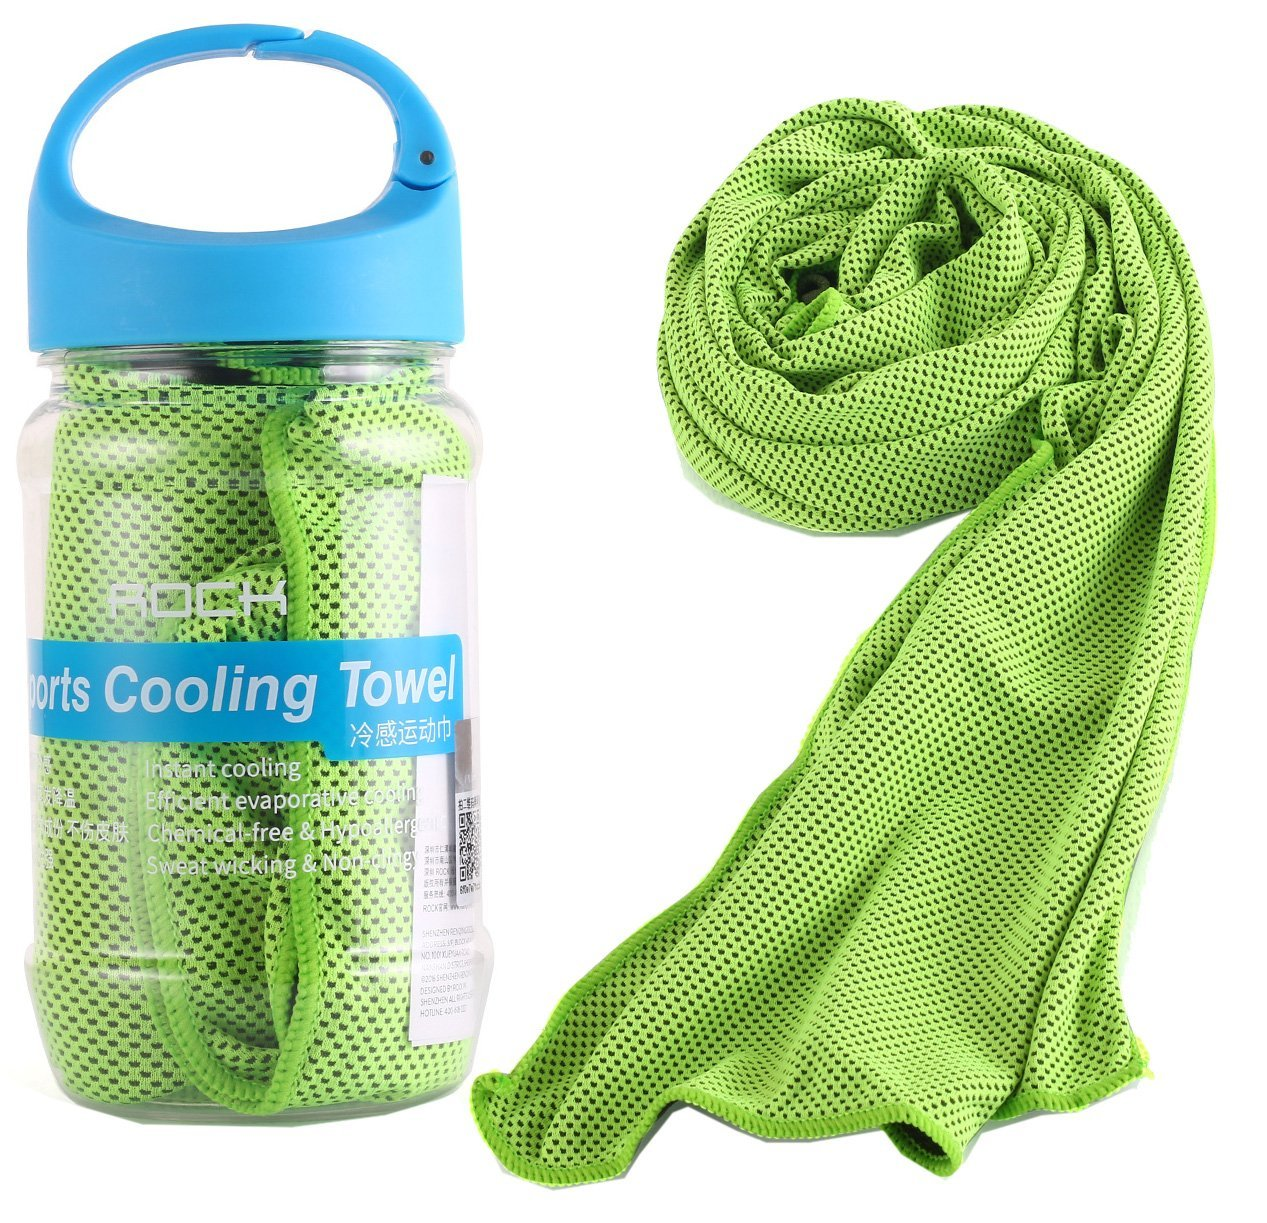 Best Gym Workout Towels: The Best Gym Towel: Top 10 Options Reviewed